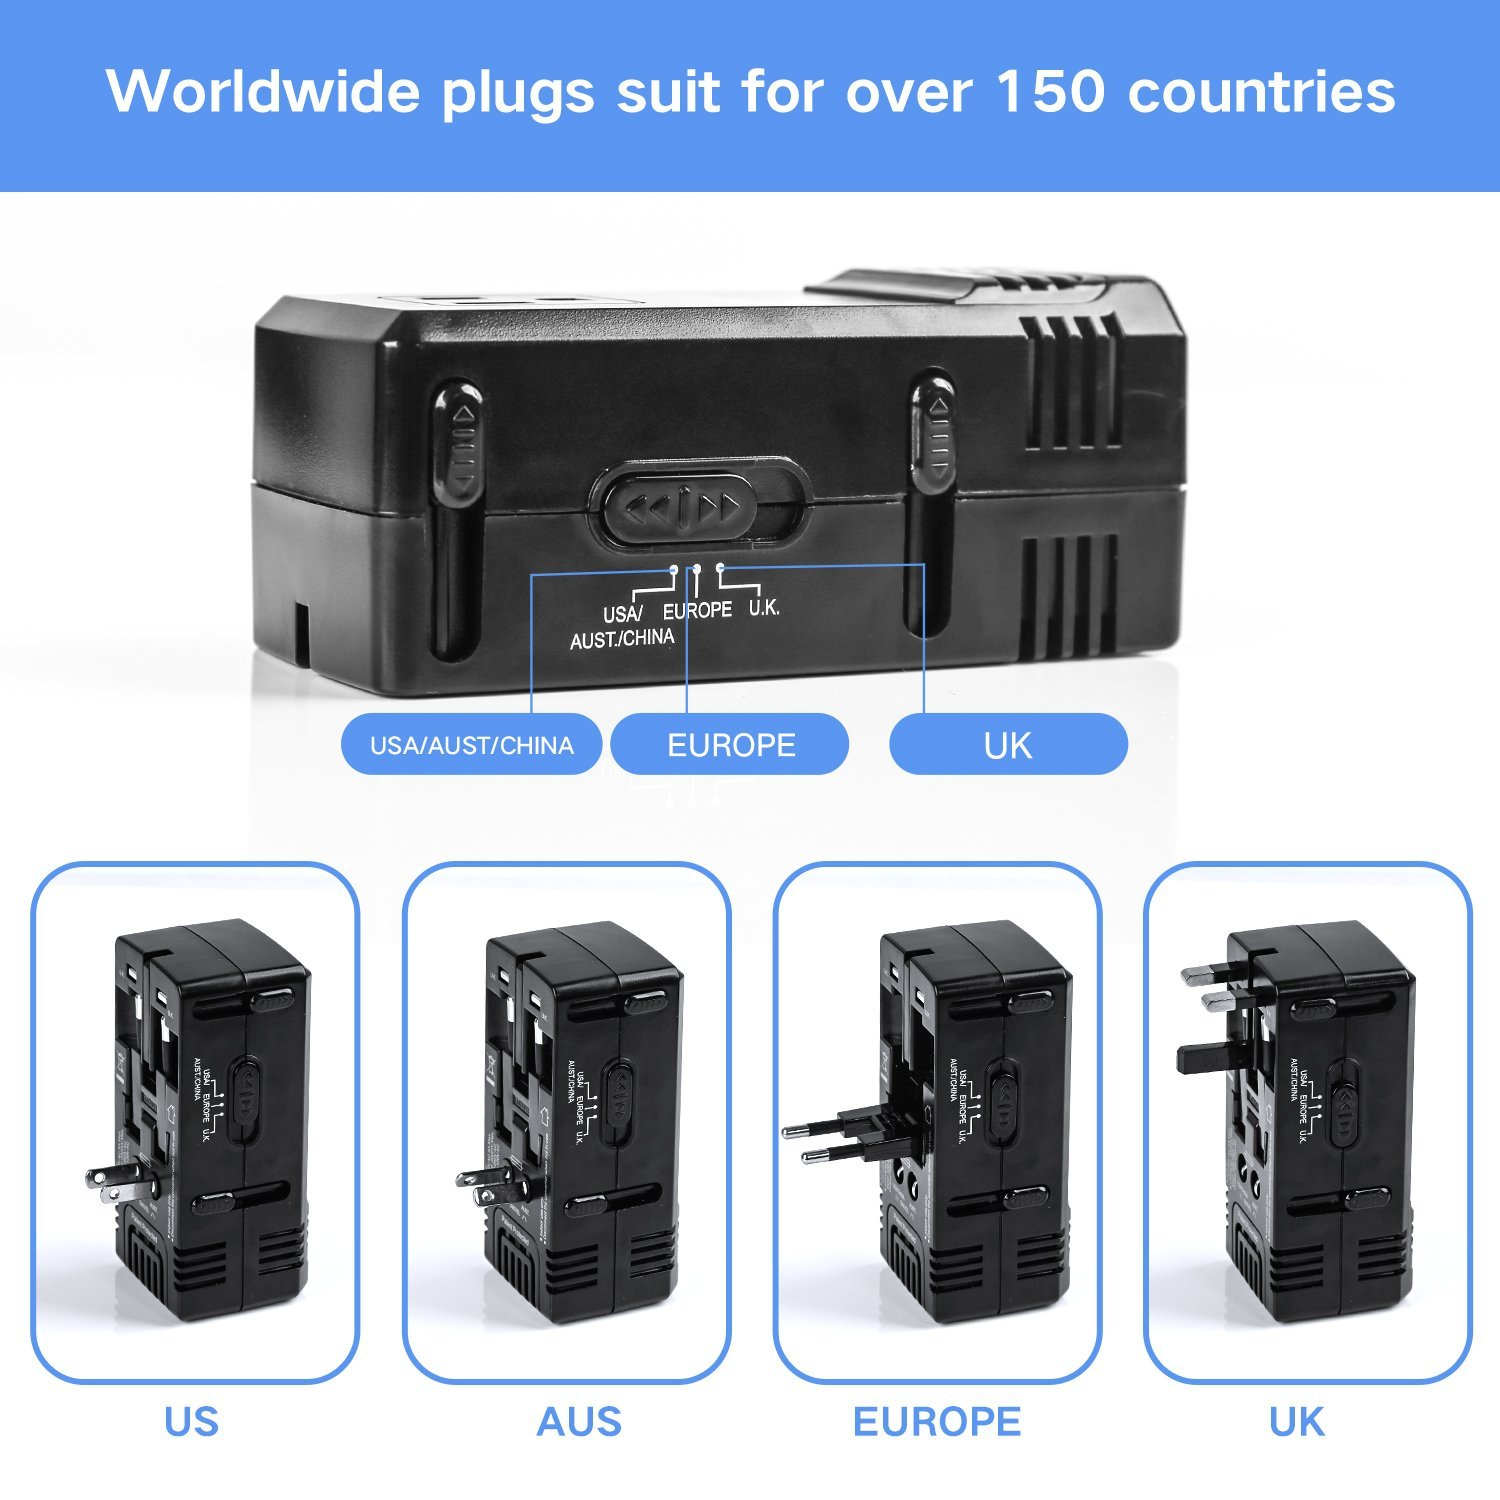 DOACE 1875W Travel Power Converter and Adapter Combo, Step Down Voltage Transformer 220V to 110V for Hair Dryers, International EU/UK/AU/US Wall Charger Plugs for 150 Countries (1875W) (1875W) by DOACE (Image #4)